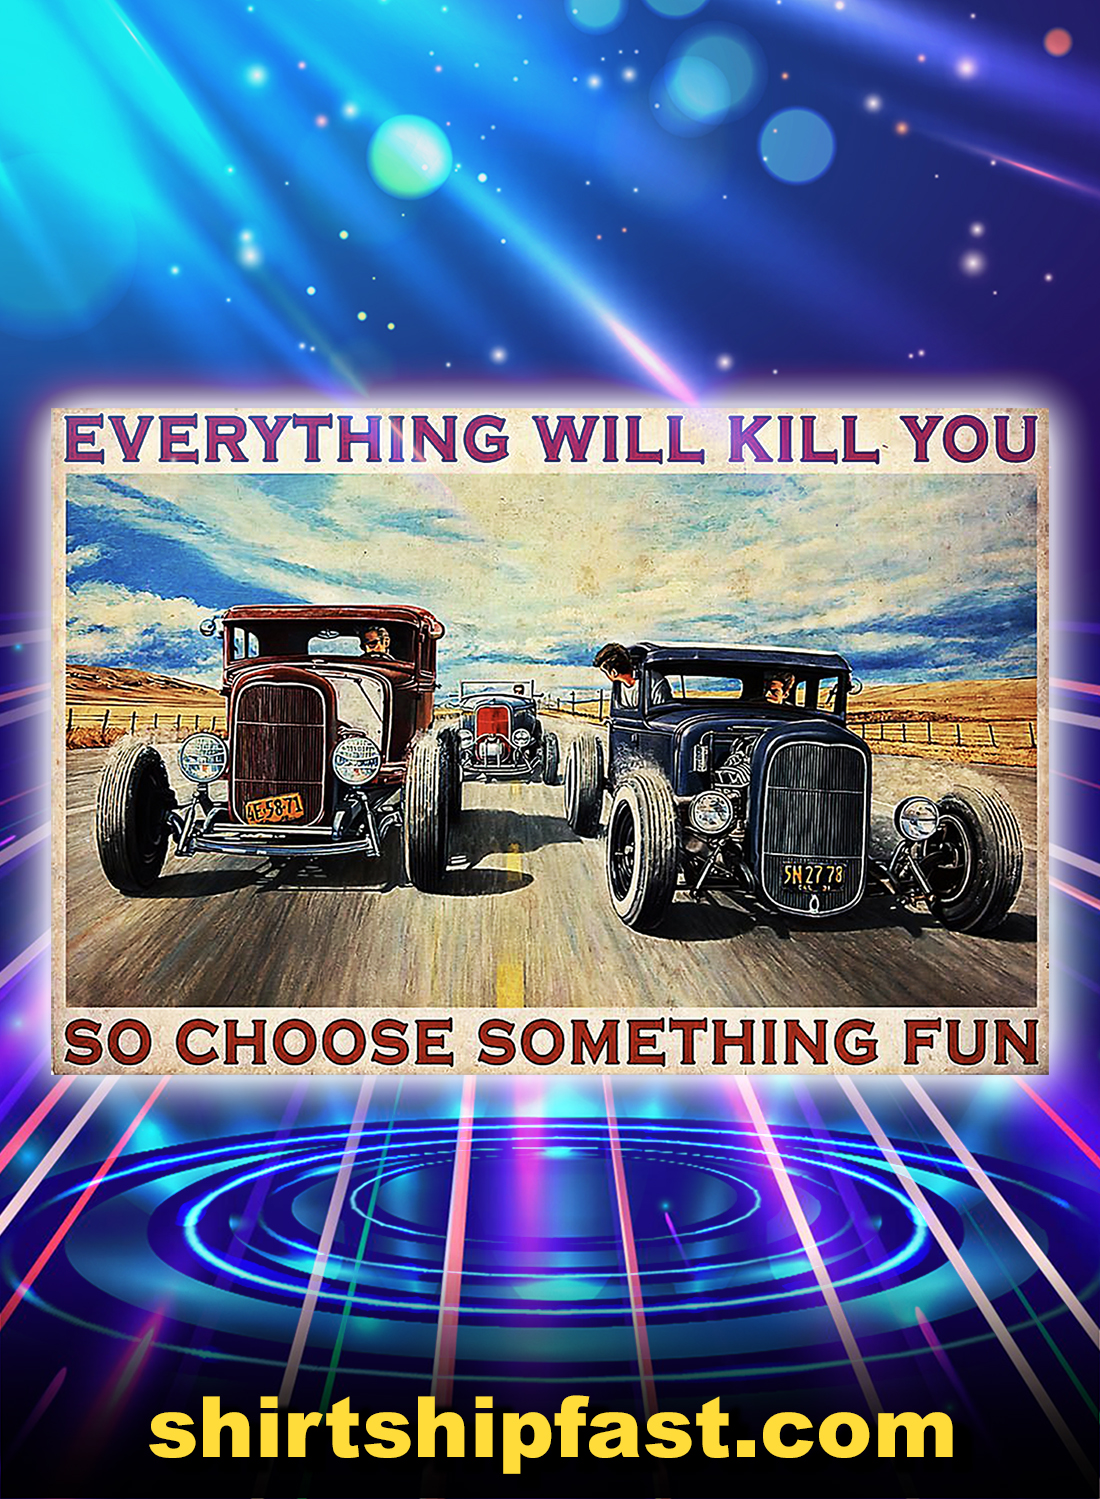 Hot rod everything will kill you so choose something fun poster - A4